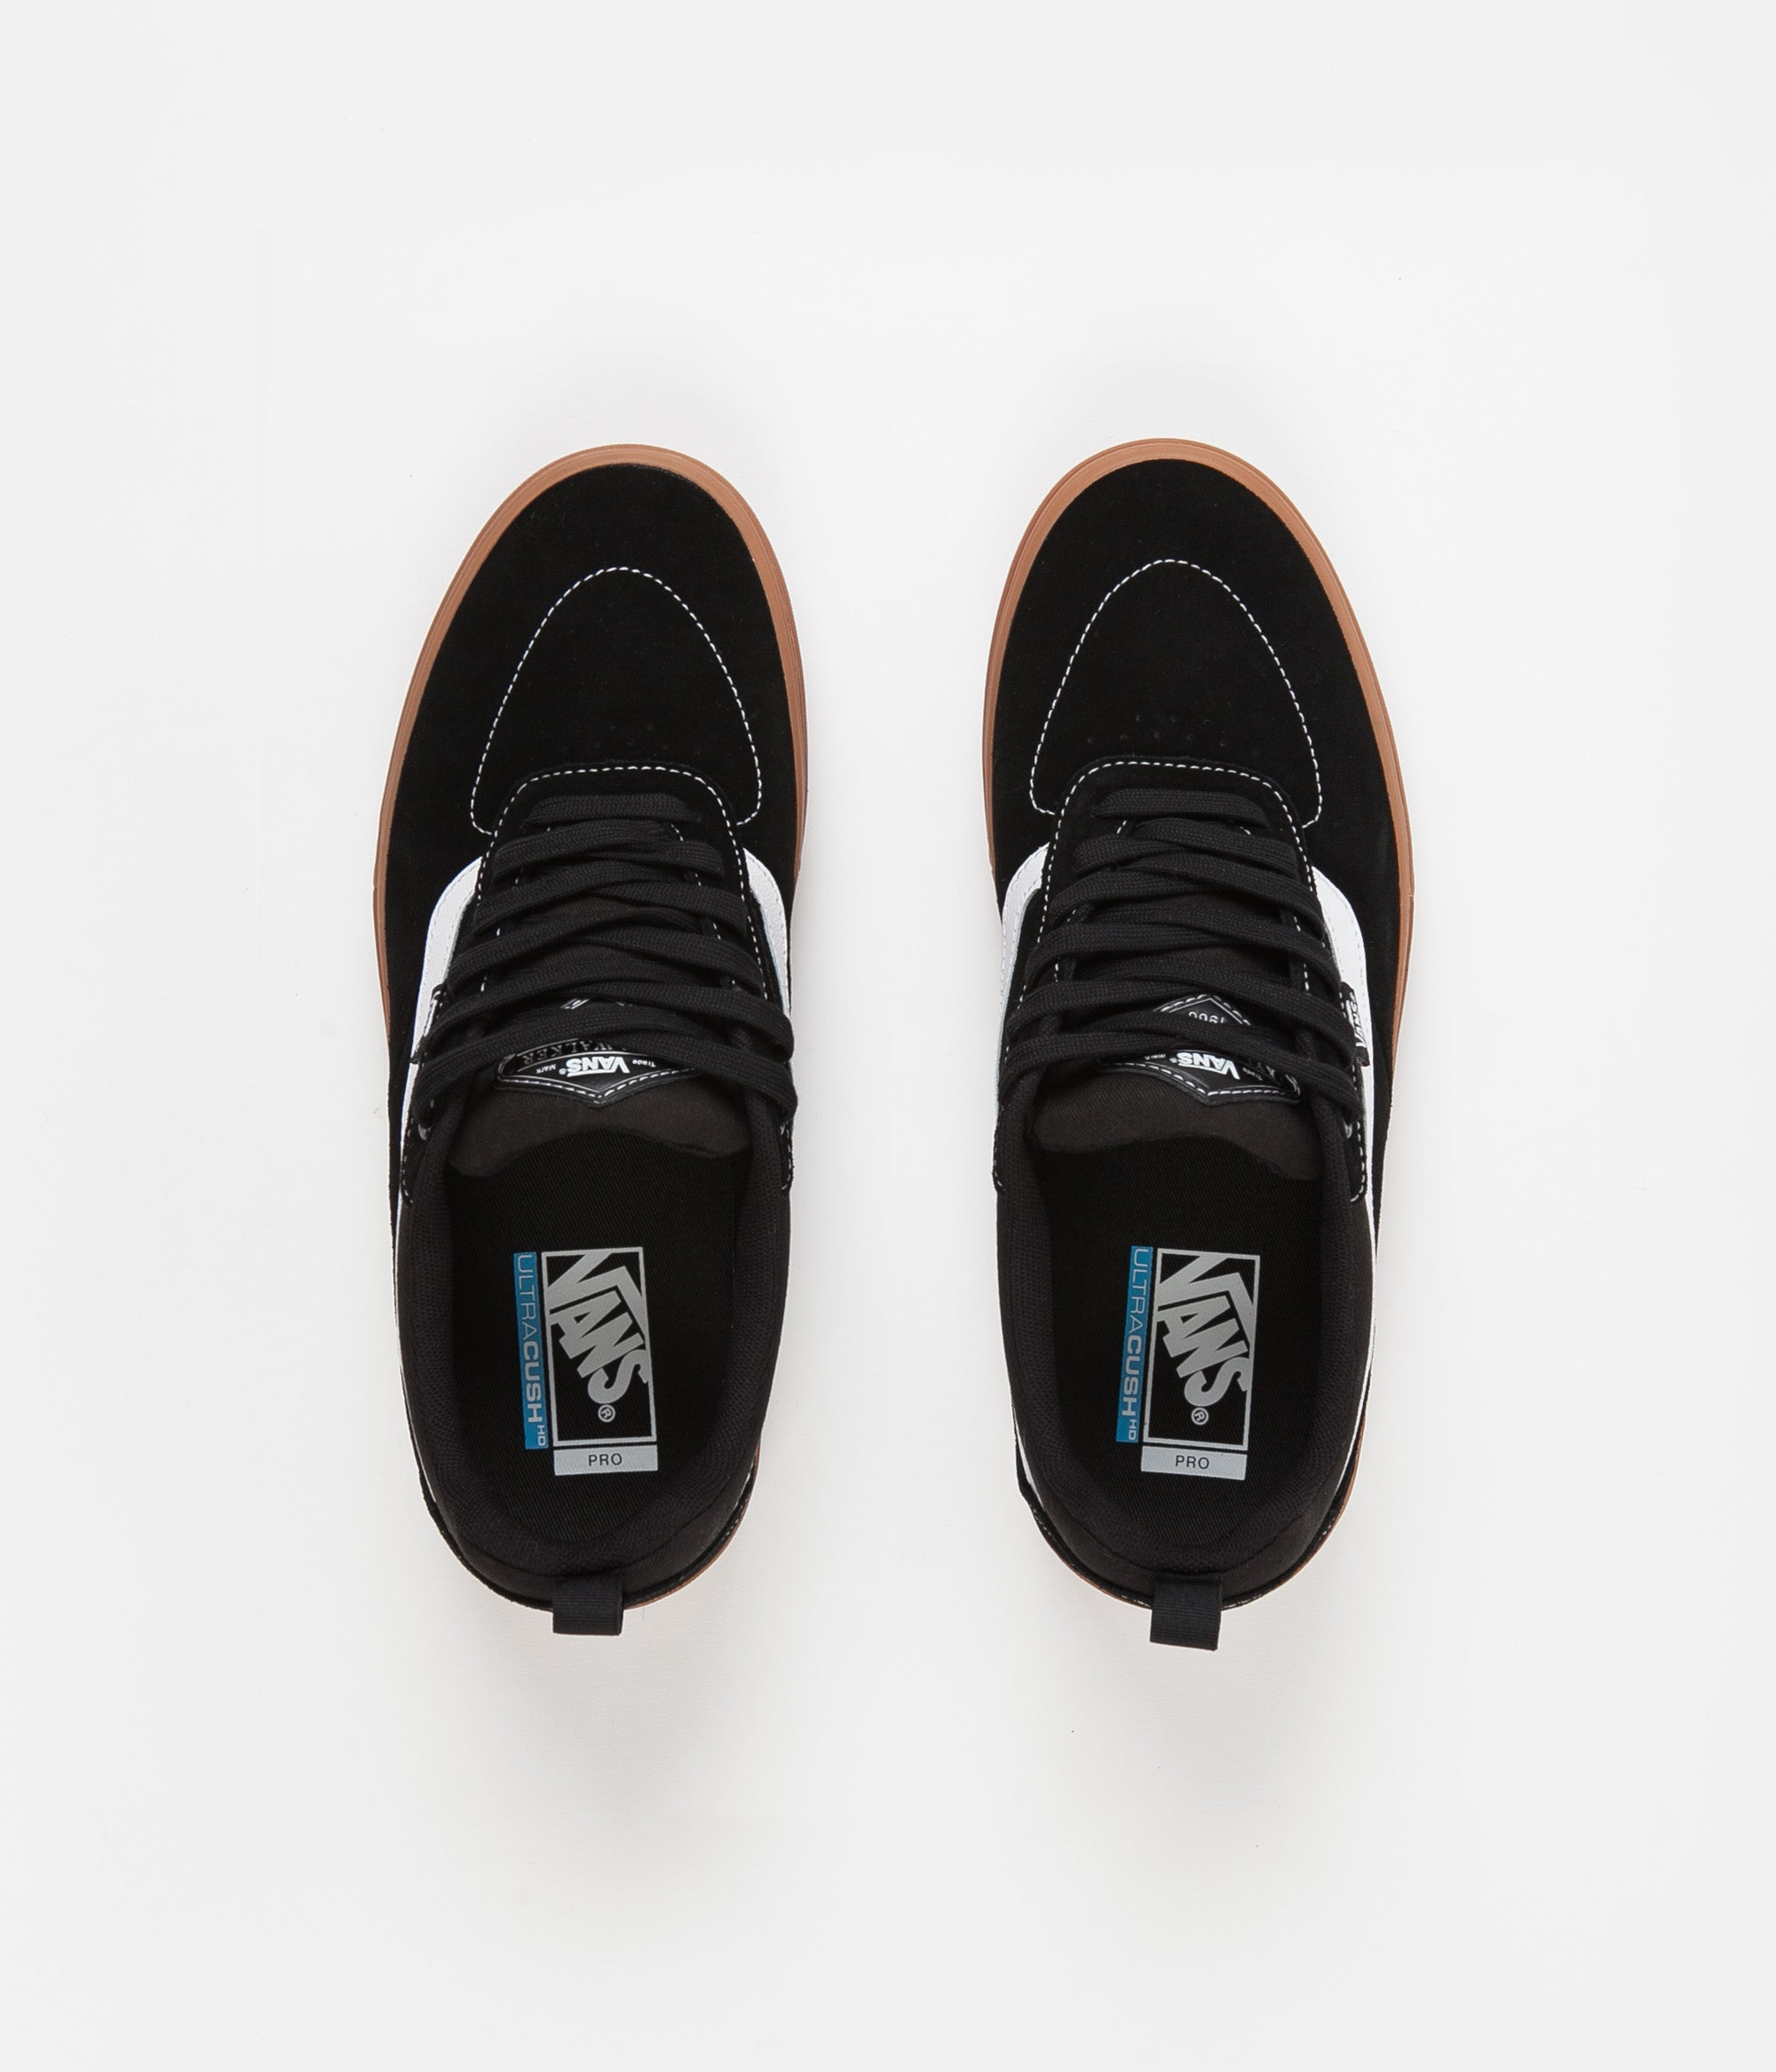 Vans Kyle Walker Pro Shoes - Black / Gum